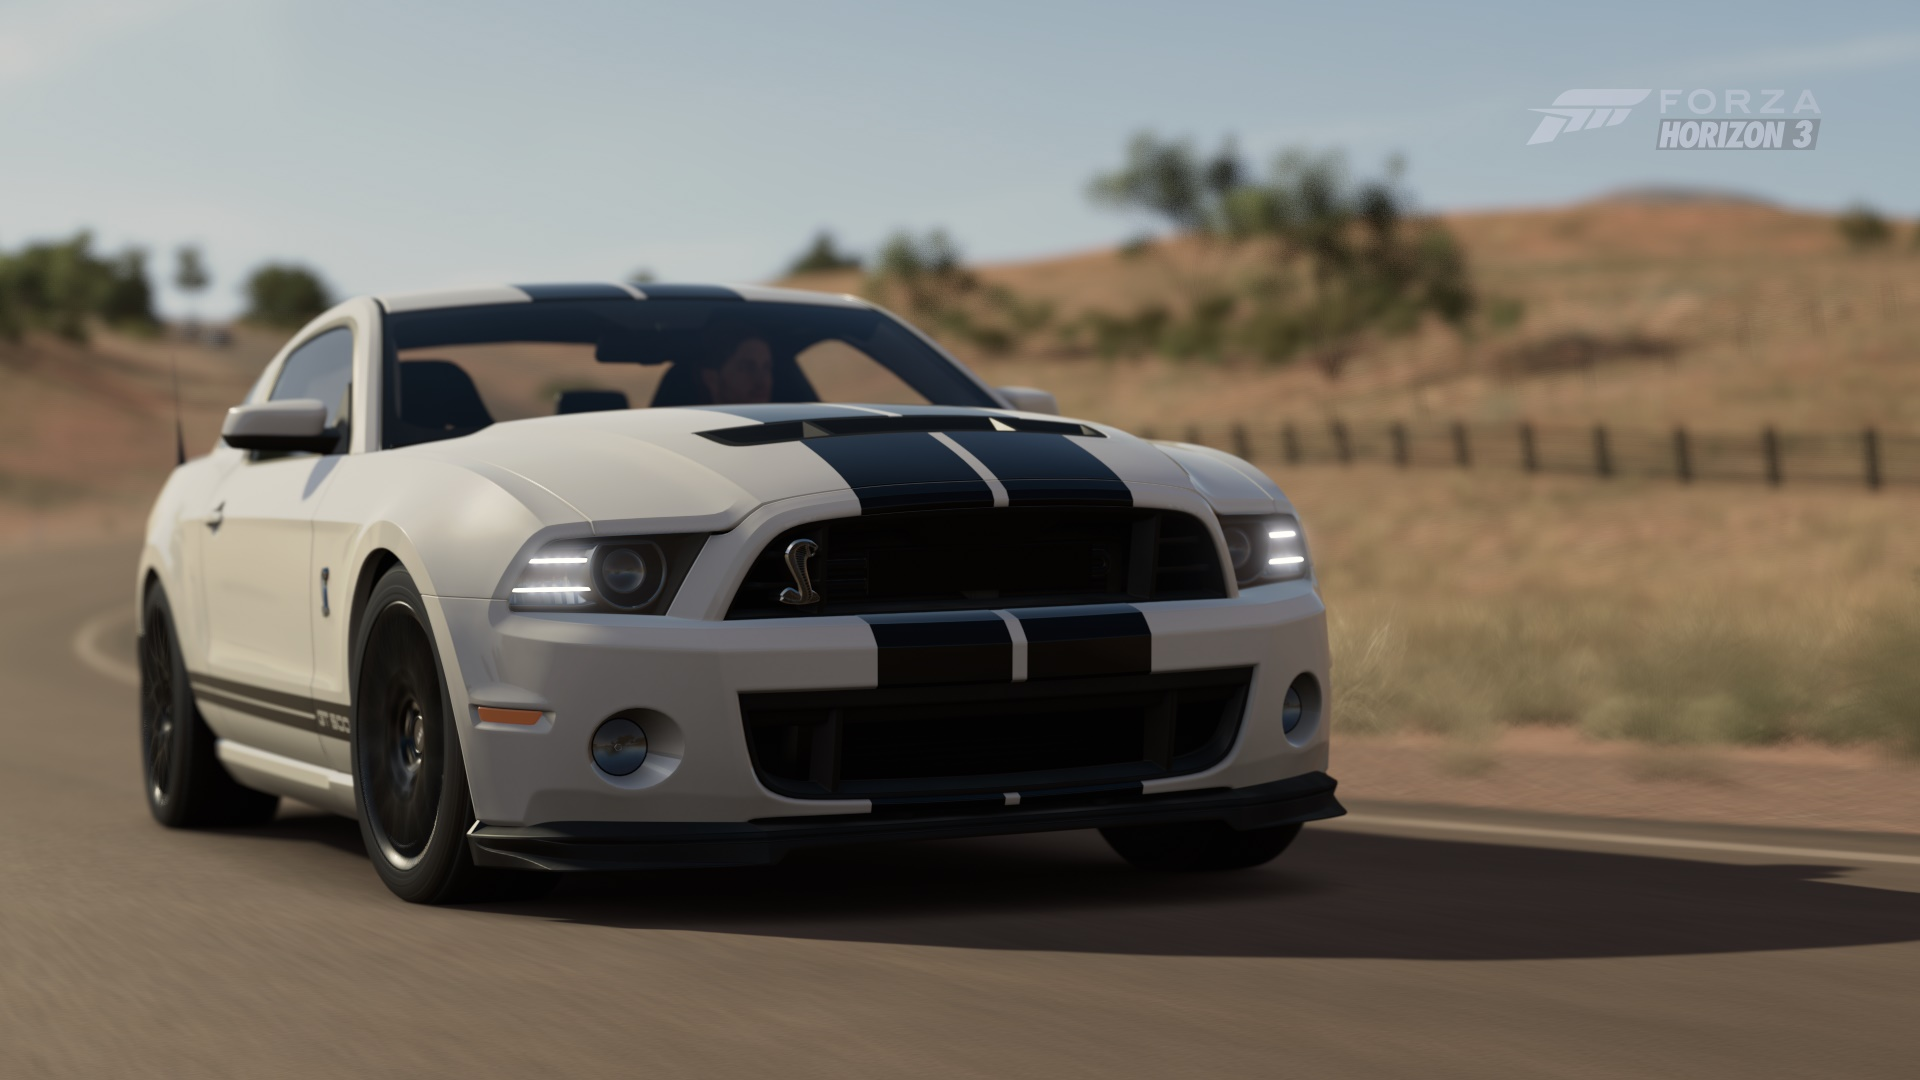 Forza Horizon 3 Cars 2000 Ford Mustang Frame 2013 Shelby Gt500 Photo By Morc 57